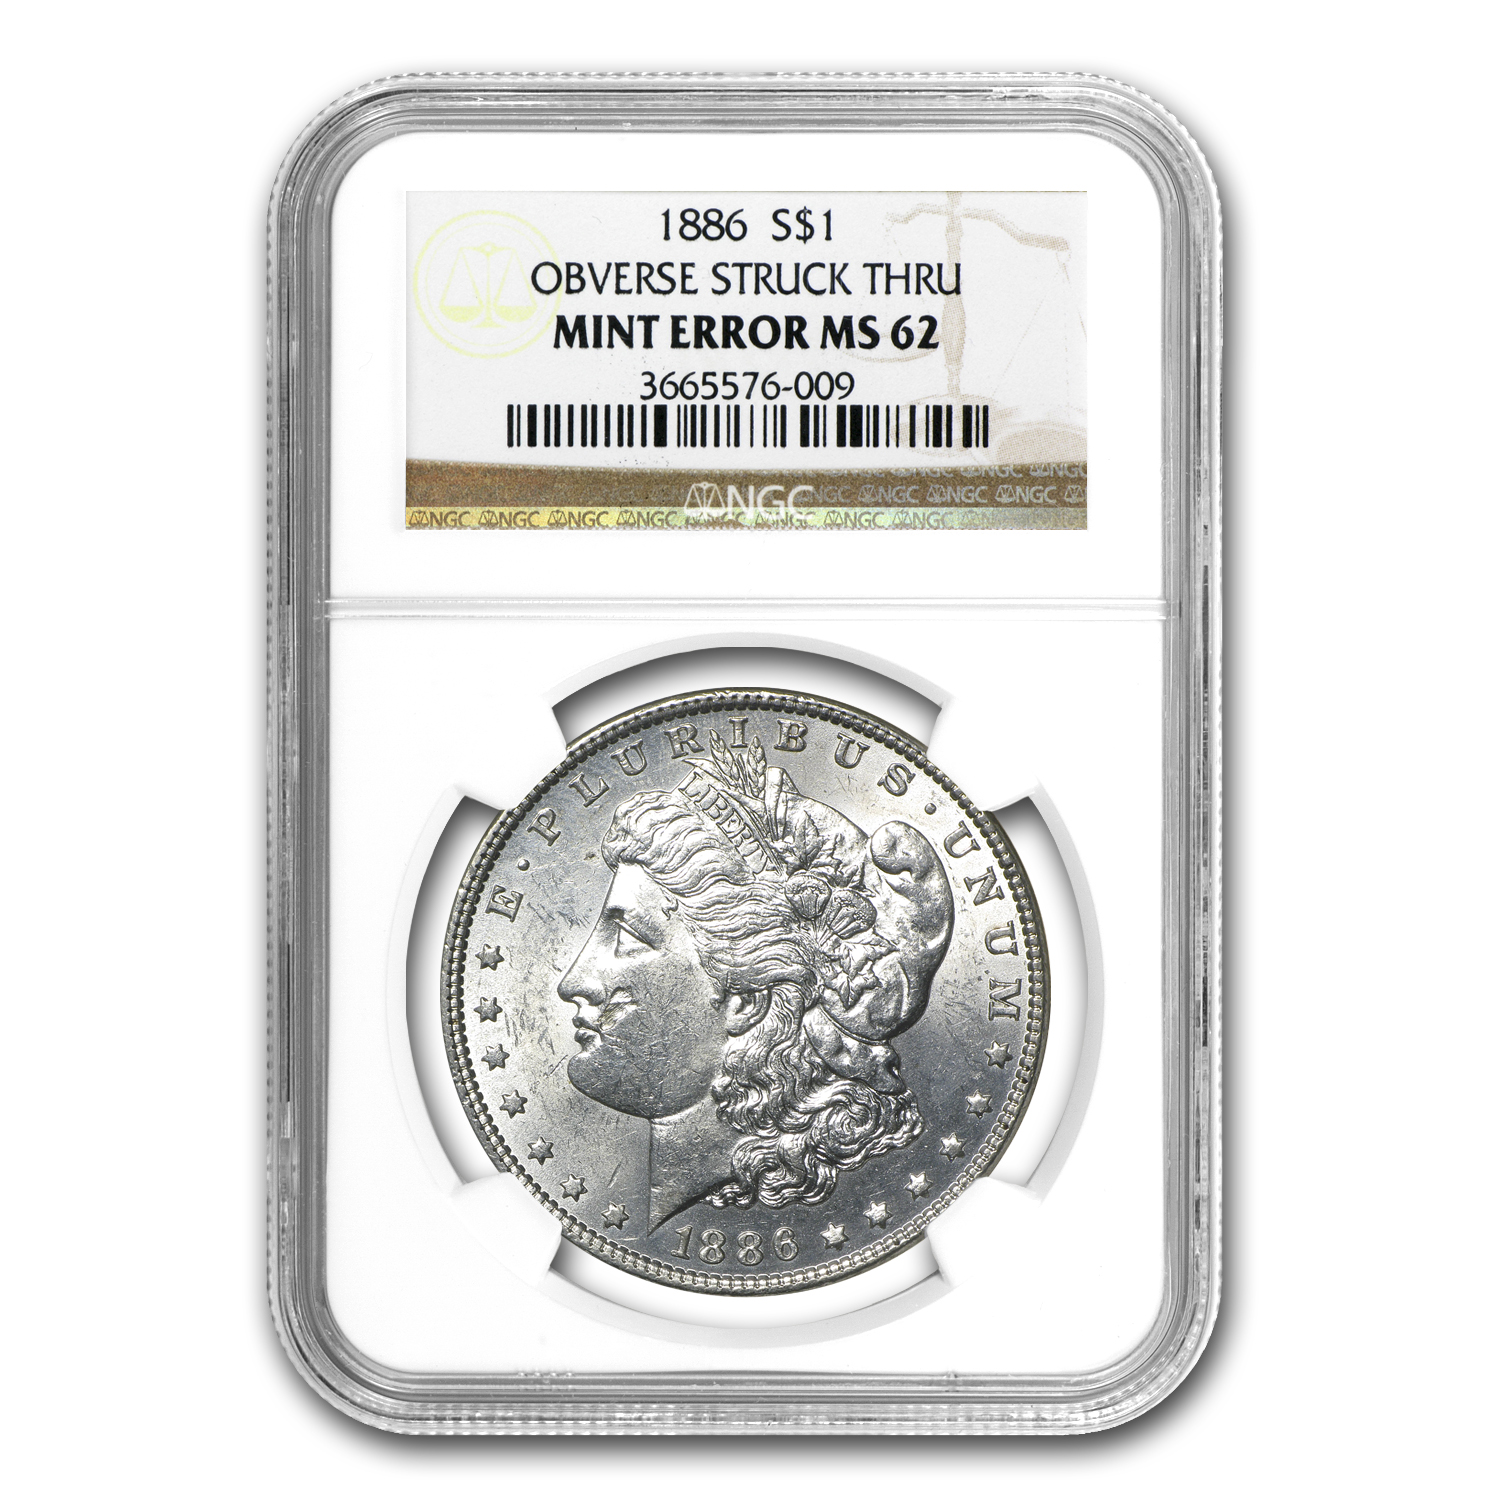 1886 Morgan Dollar MS-62 NGC (Obv Struck Thru Mint Error)